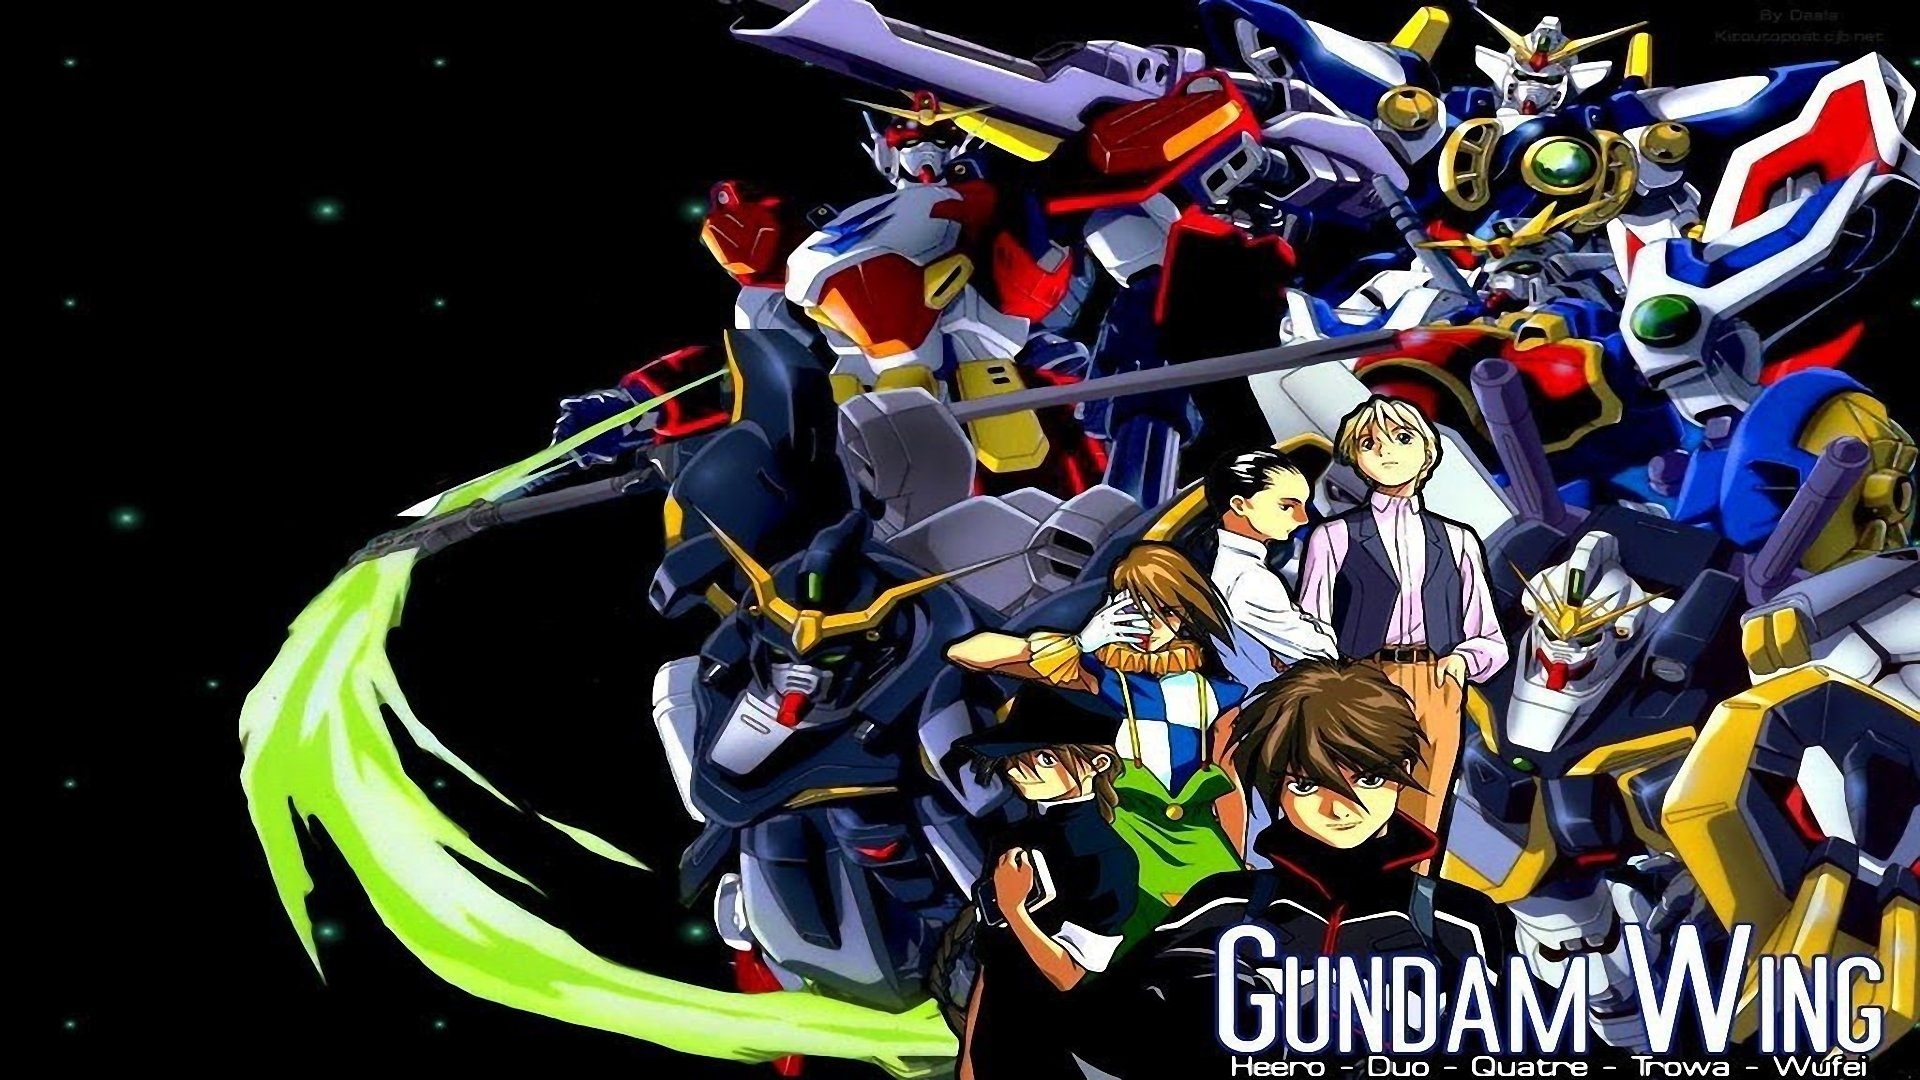 3 gundam wing: endless duel hd wallpapers | background images